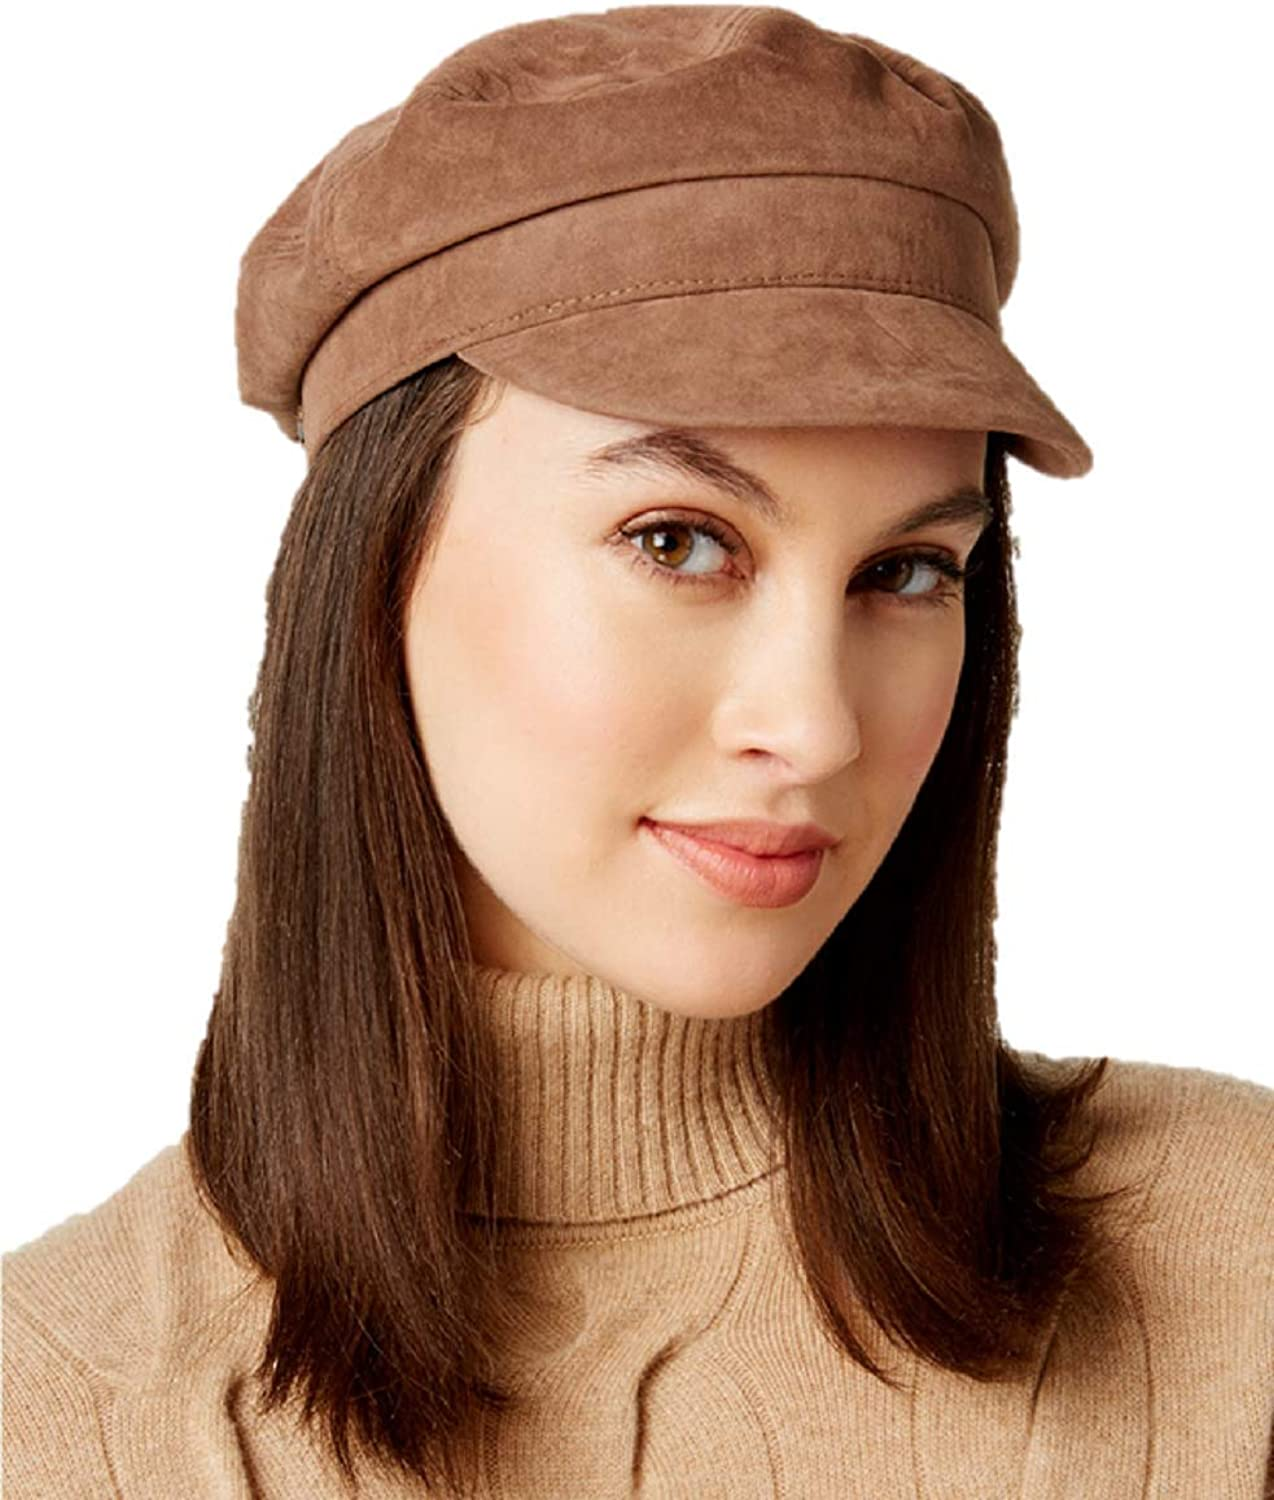 Nine West FauxSuede Flat Newsboy Cap in Taupe